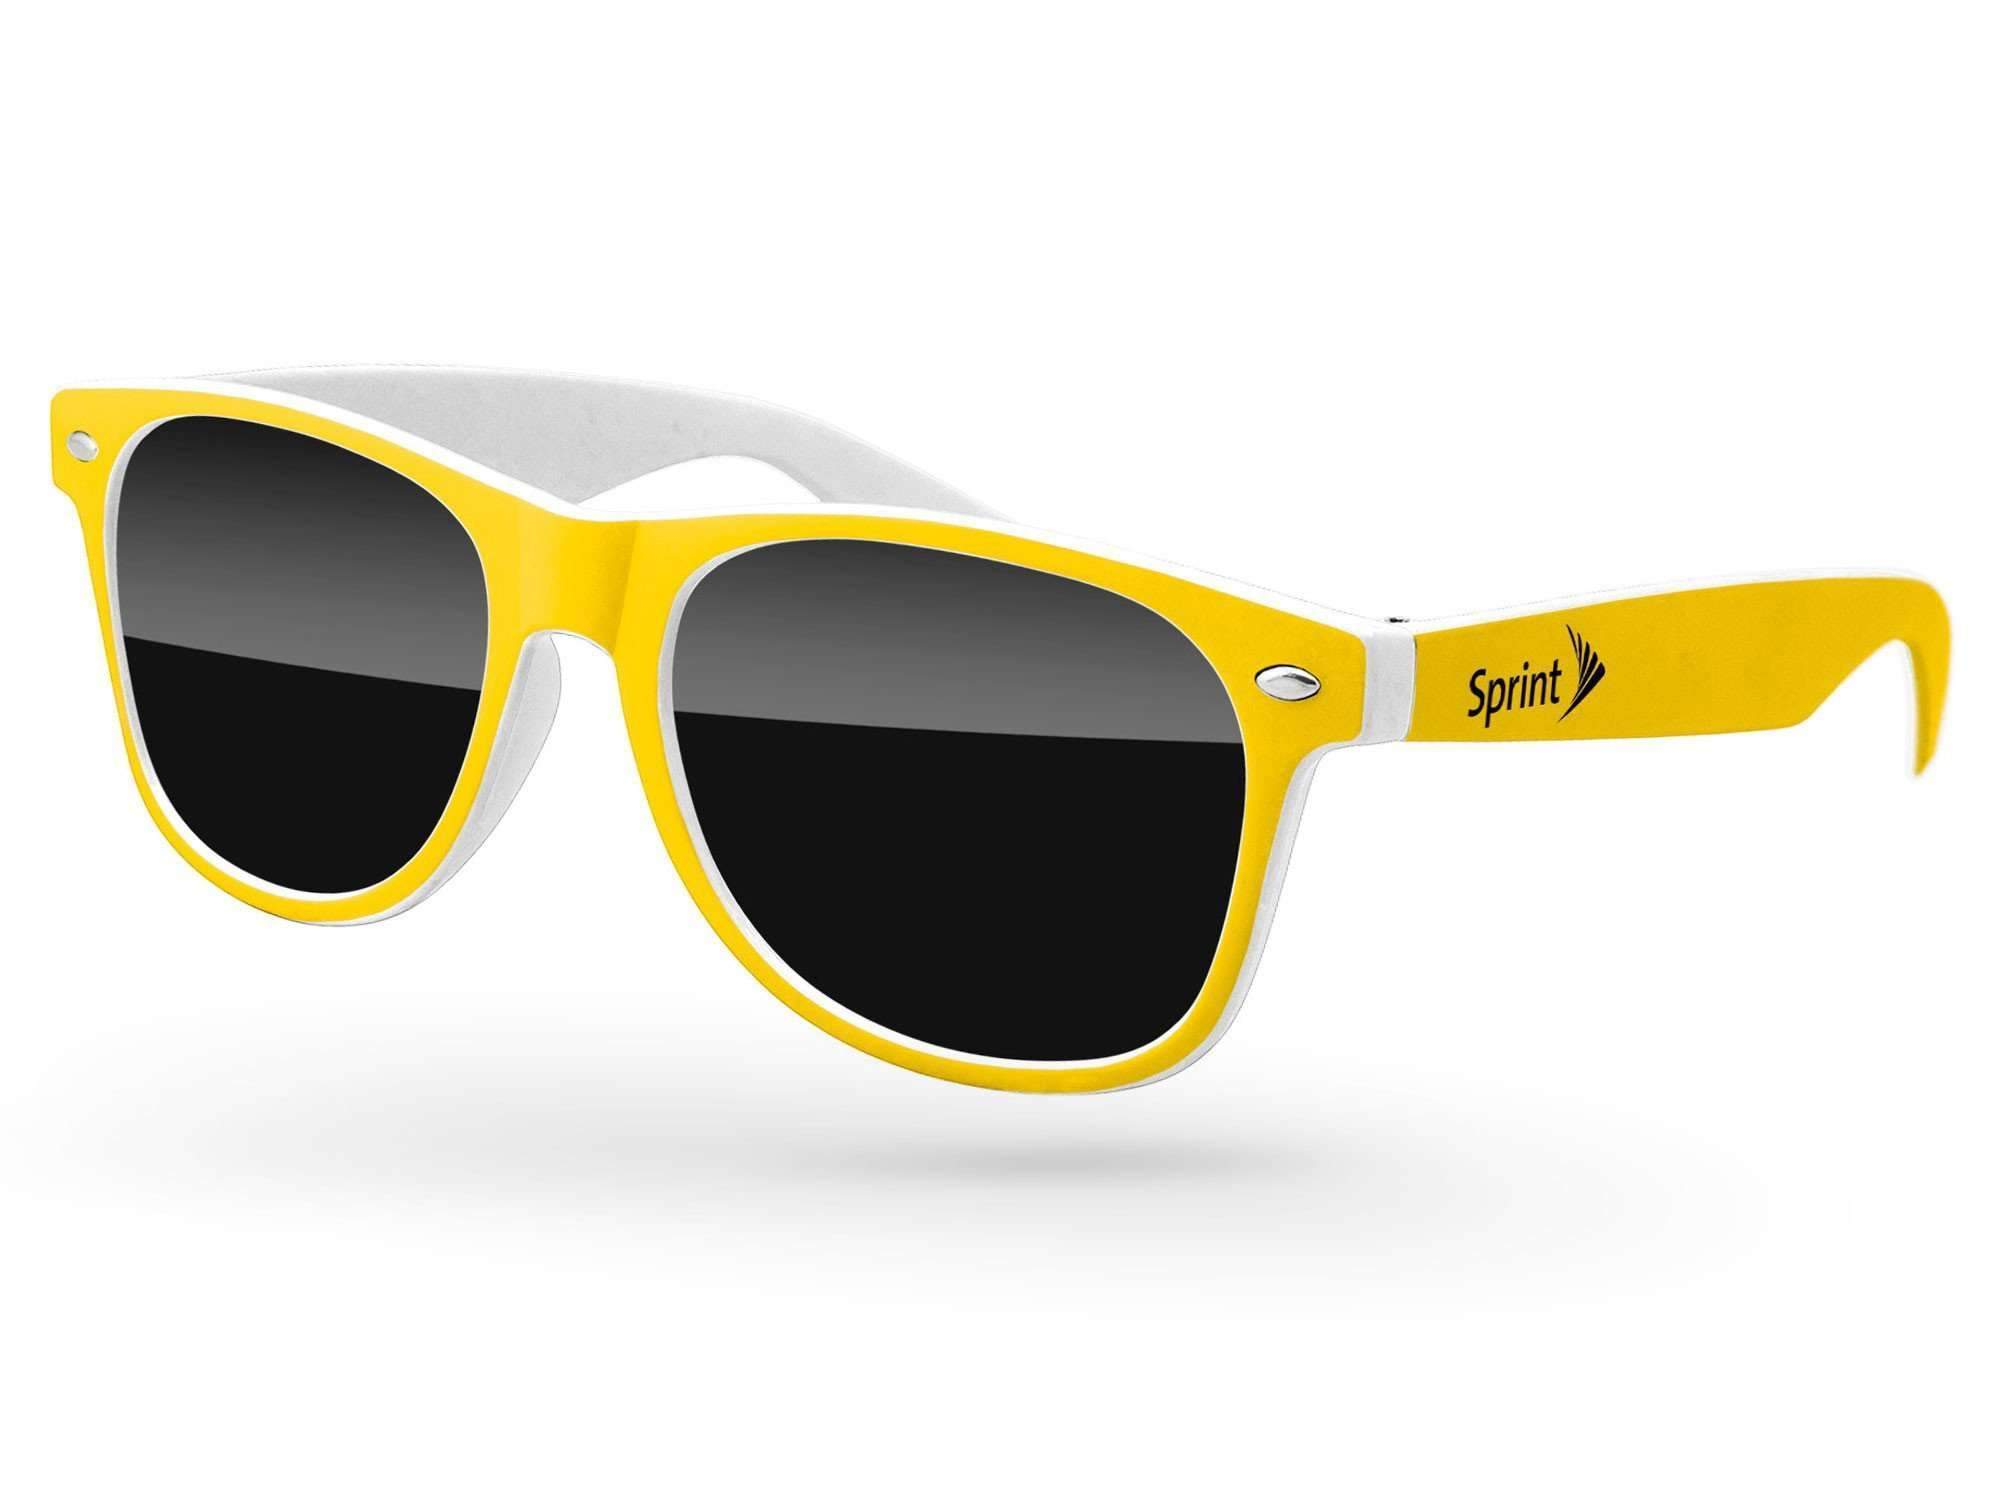 RD011 - 2-tone Retro Promotional Sunglasses w/ 1-color temple imprint